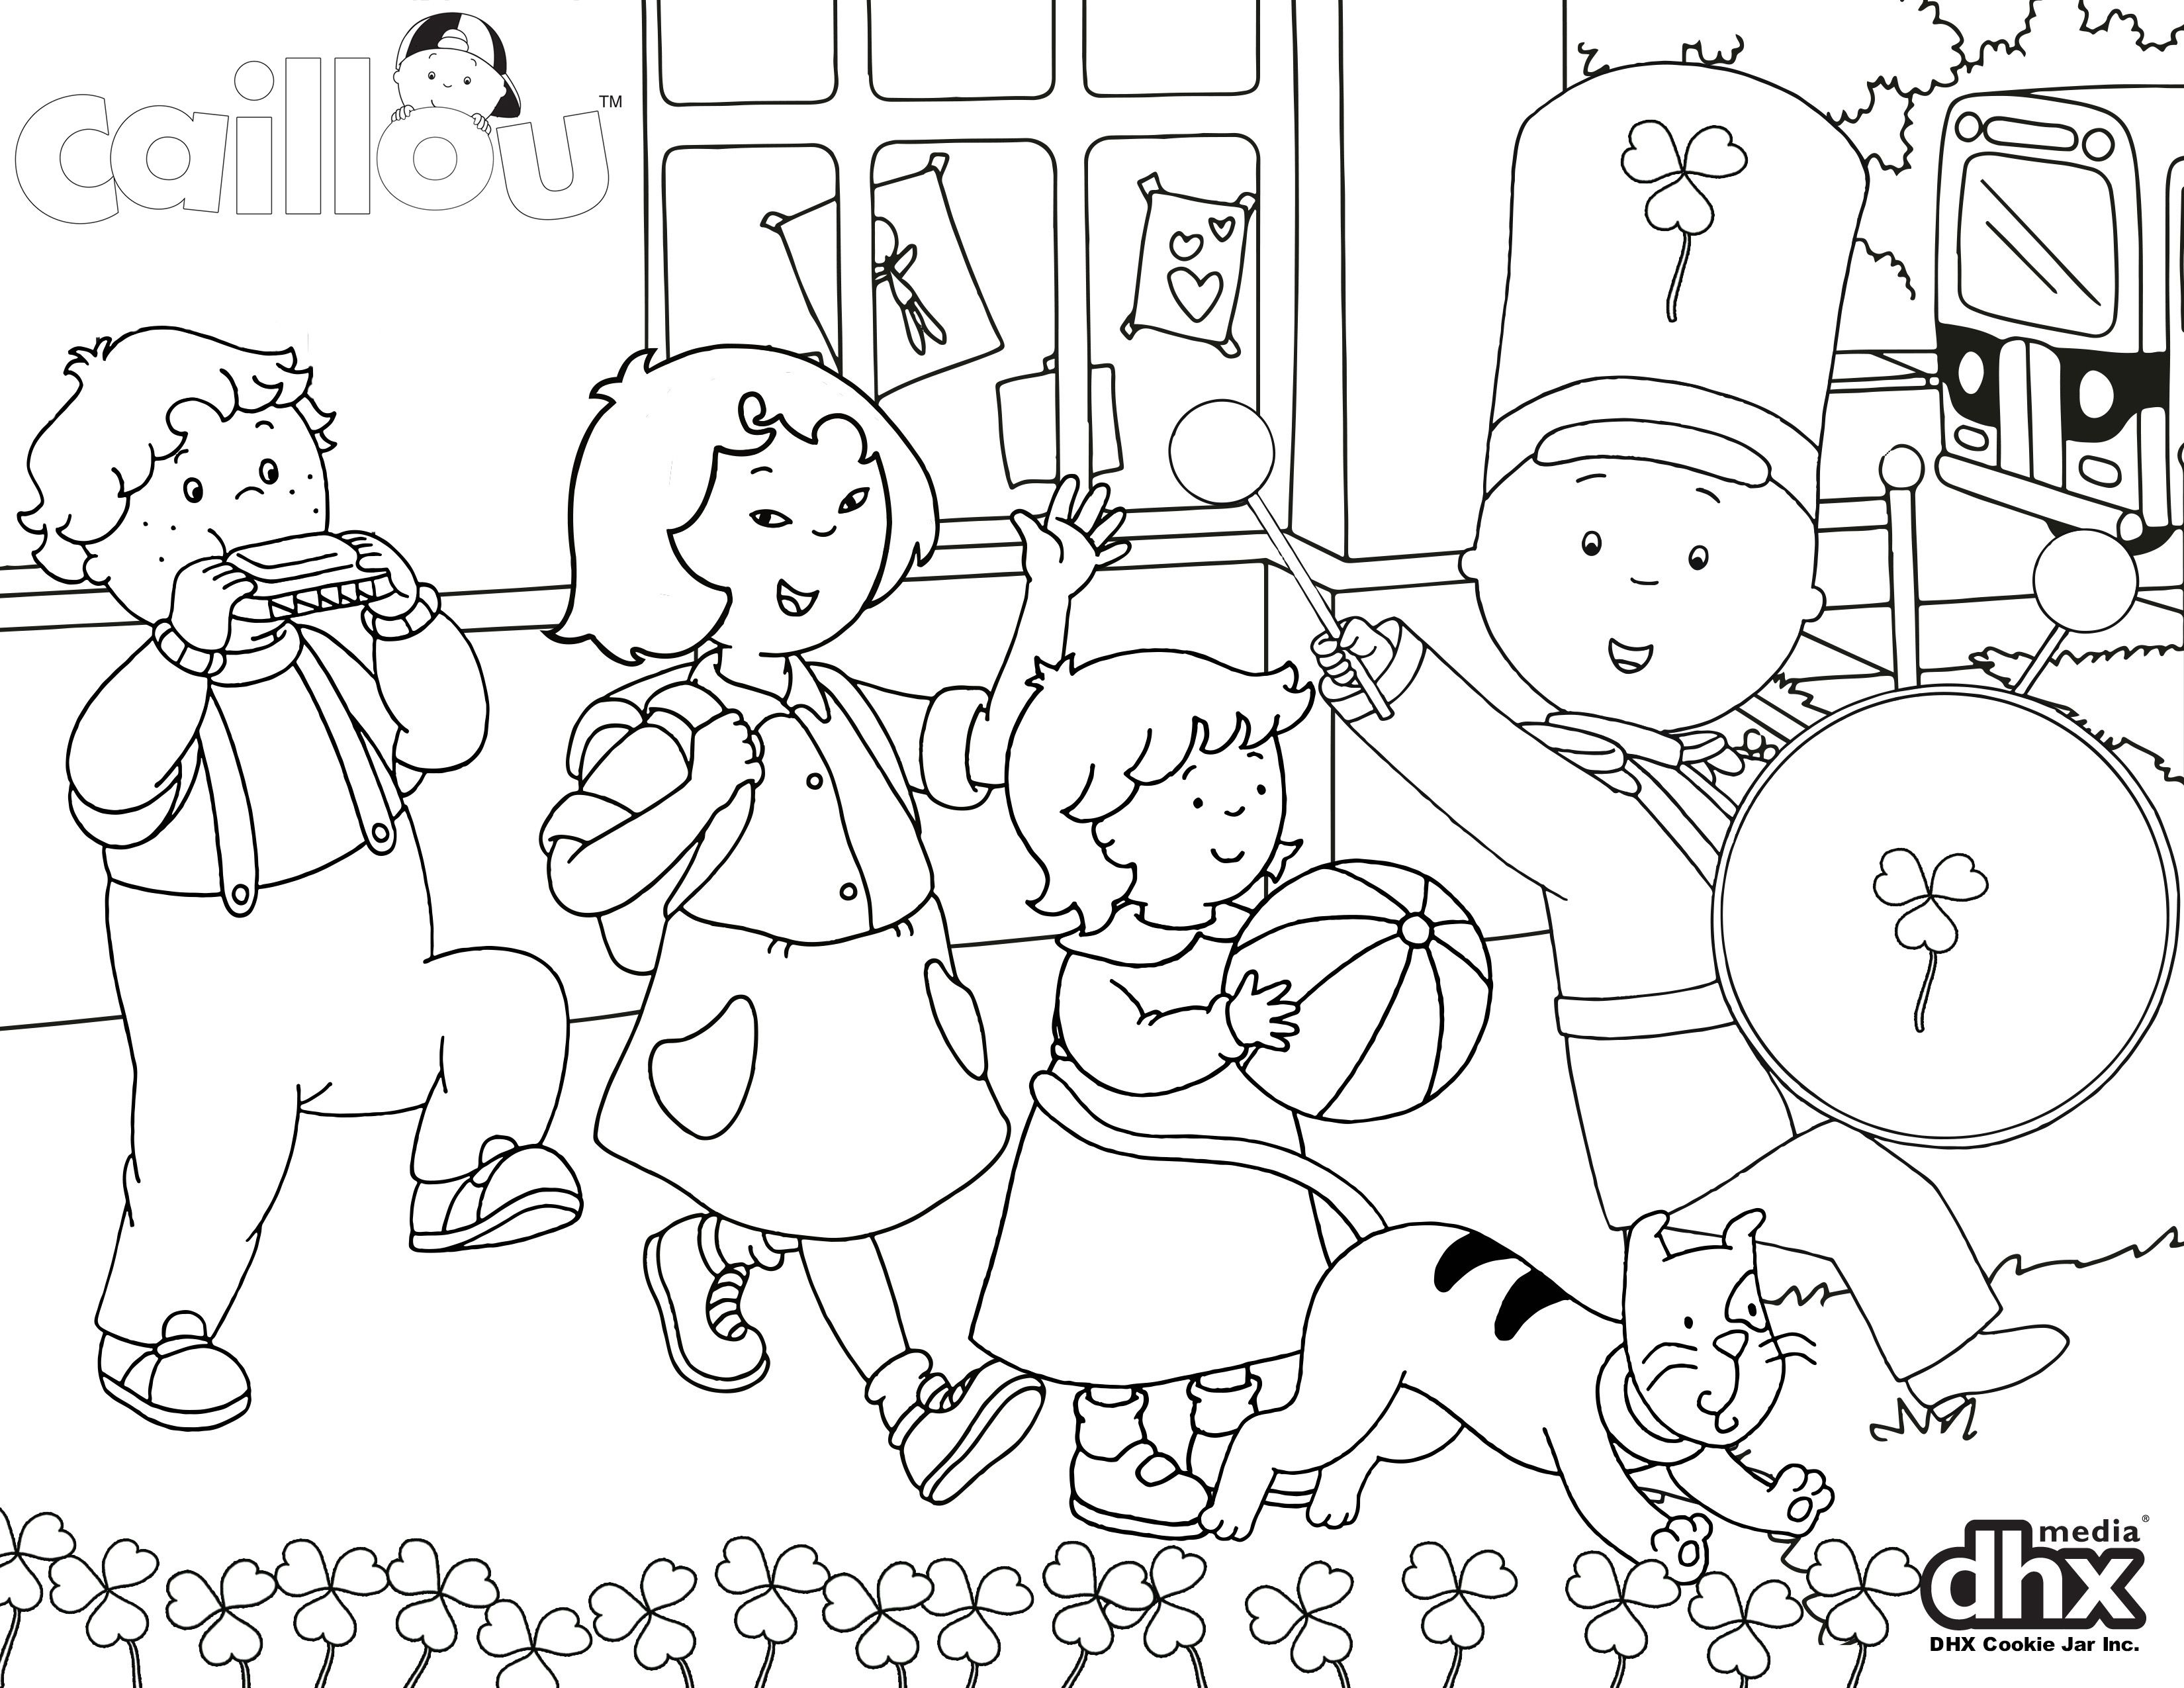 Celebrate With Your Little One And This Caillou Parade Coloring Page Bit 1bpjuds